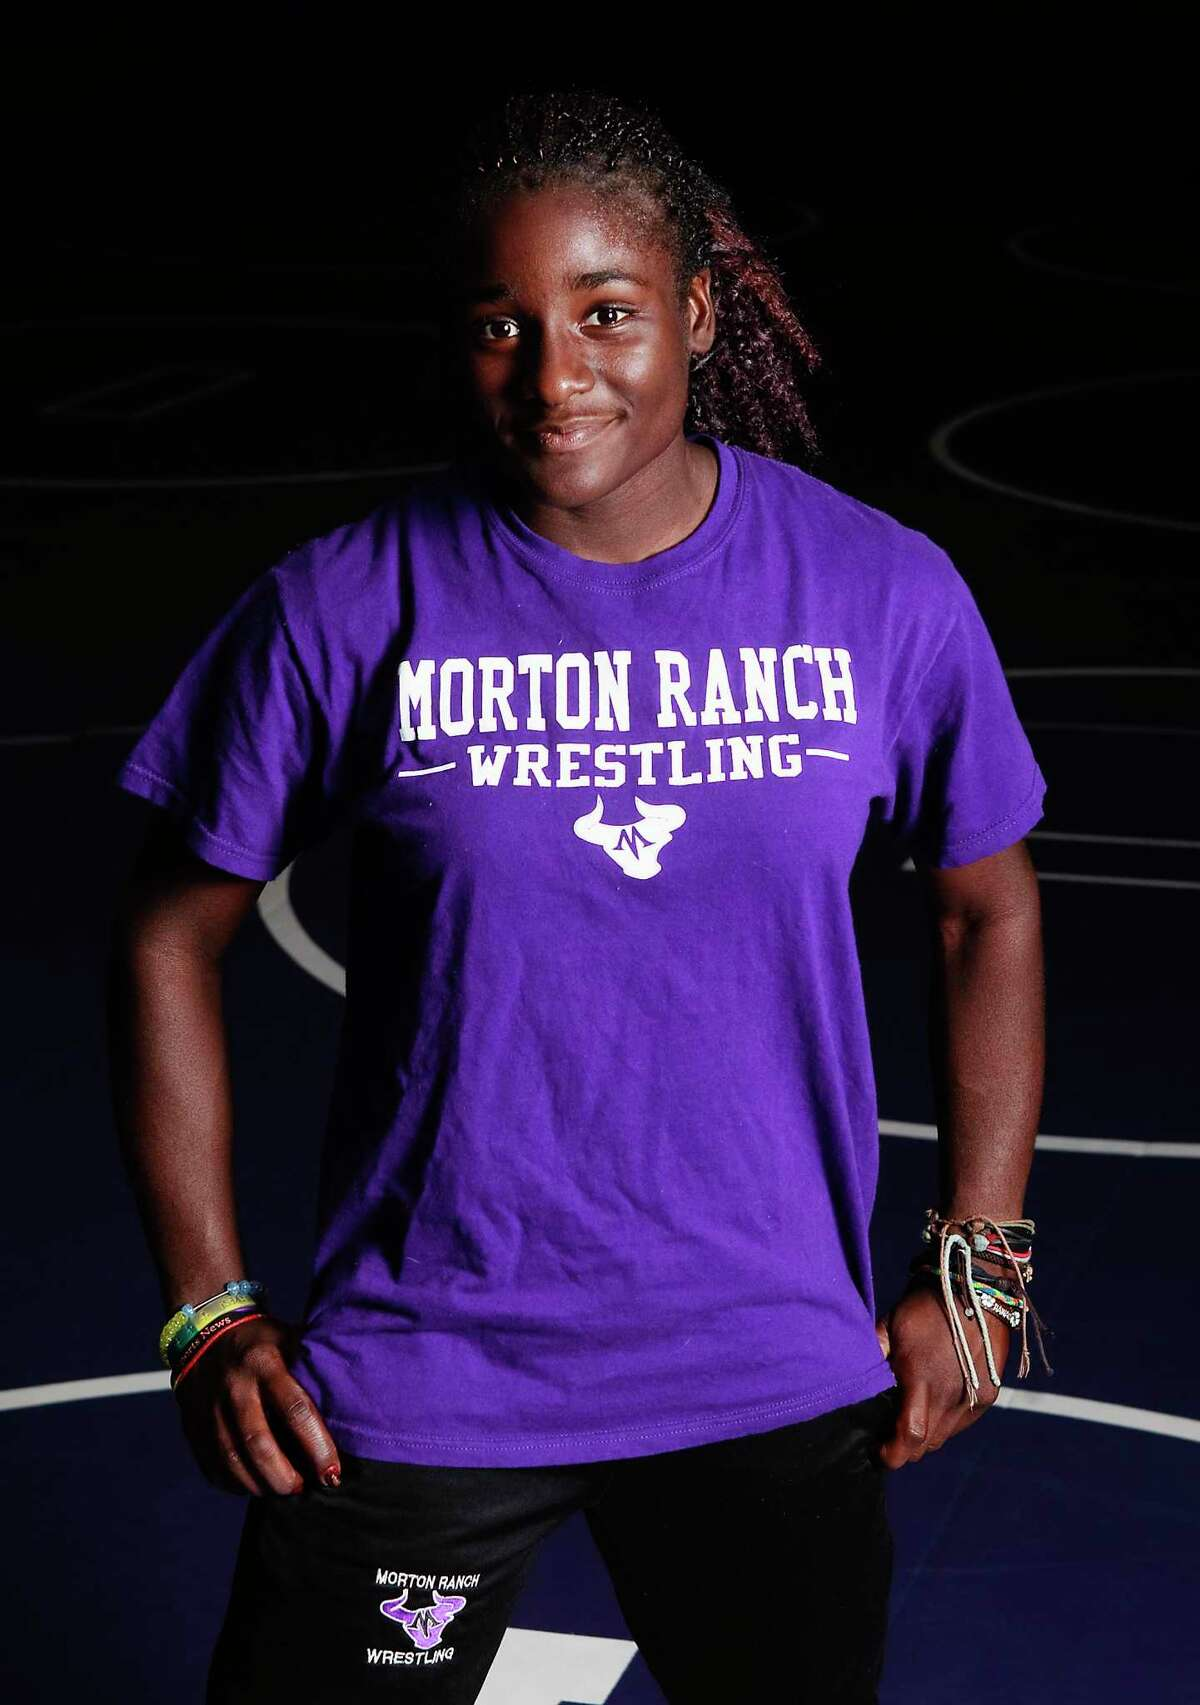 Morton Ranch wrestler Tamyra Mensah, who won her second straight state championship, has been selected as our Female Wrestler of the Year.